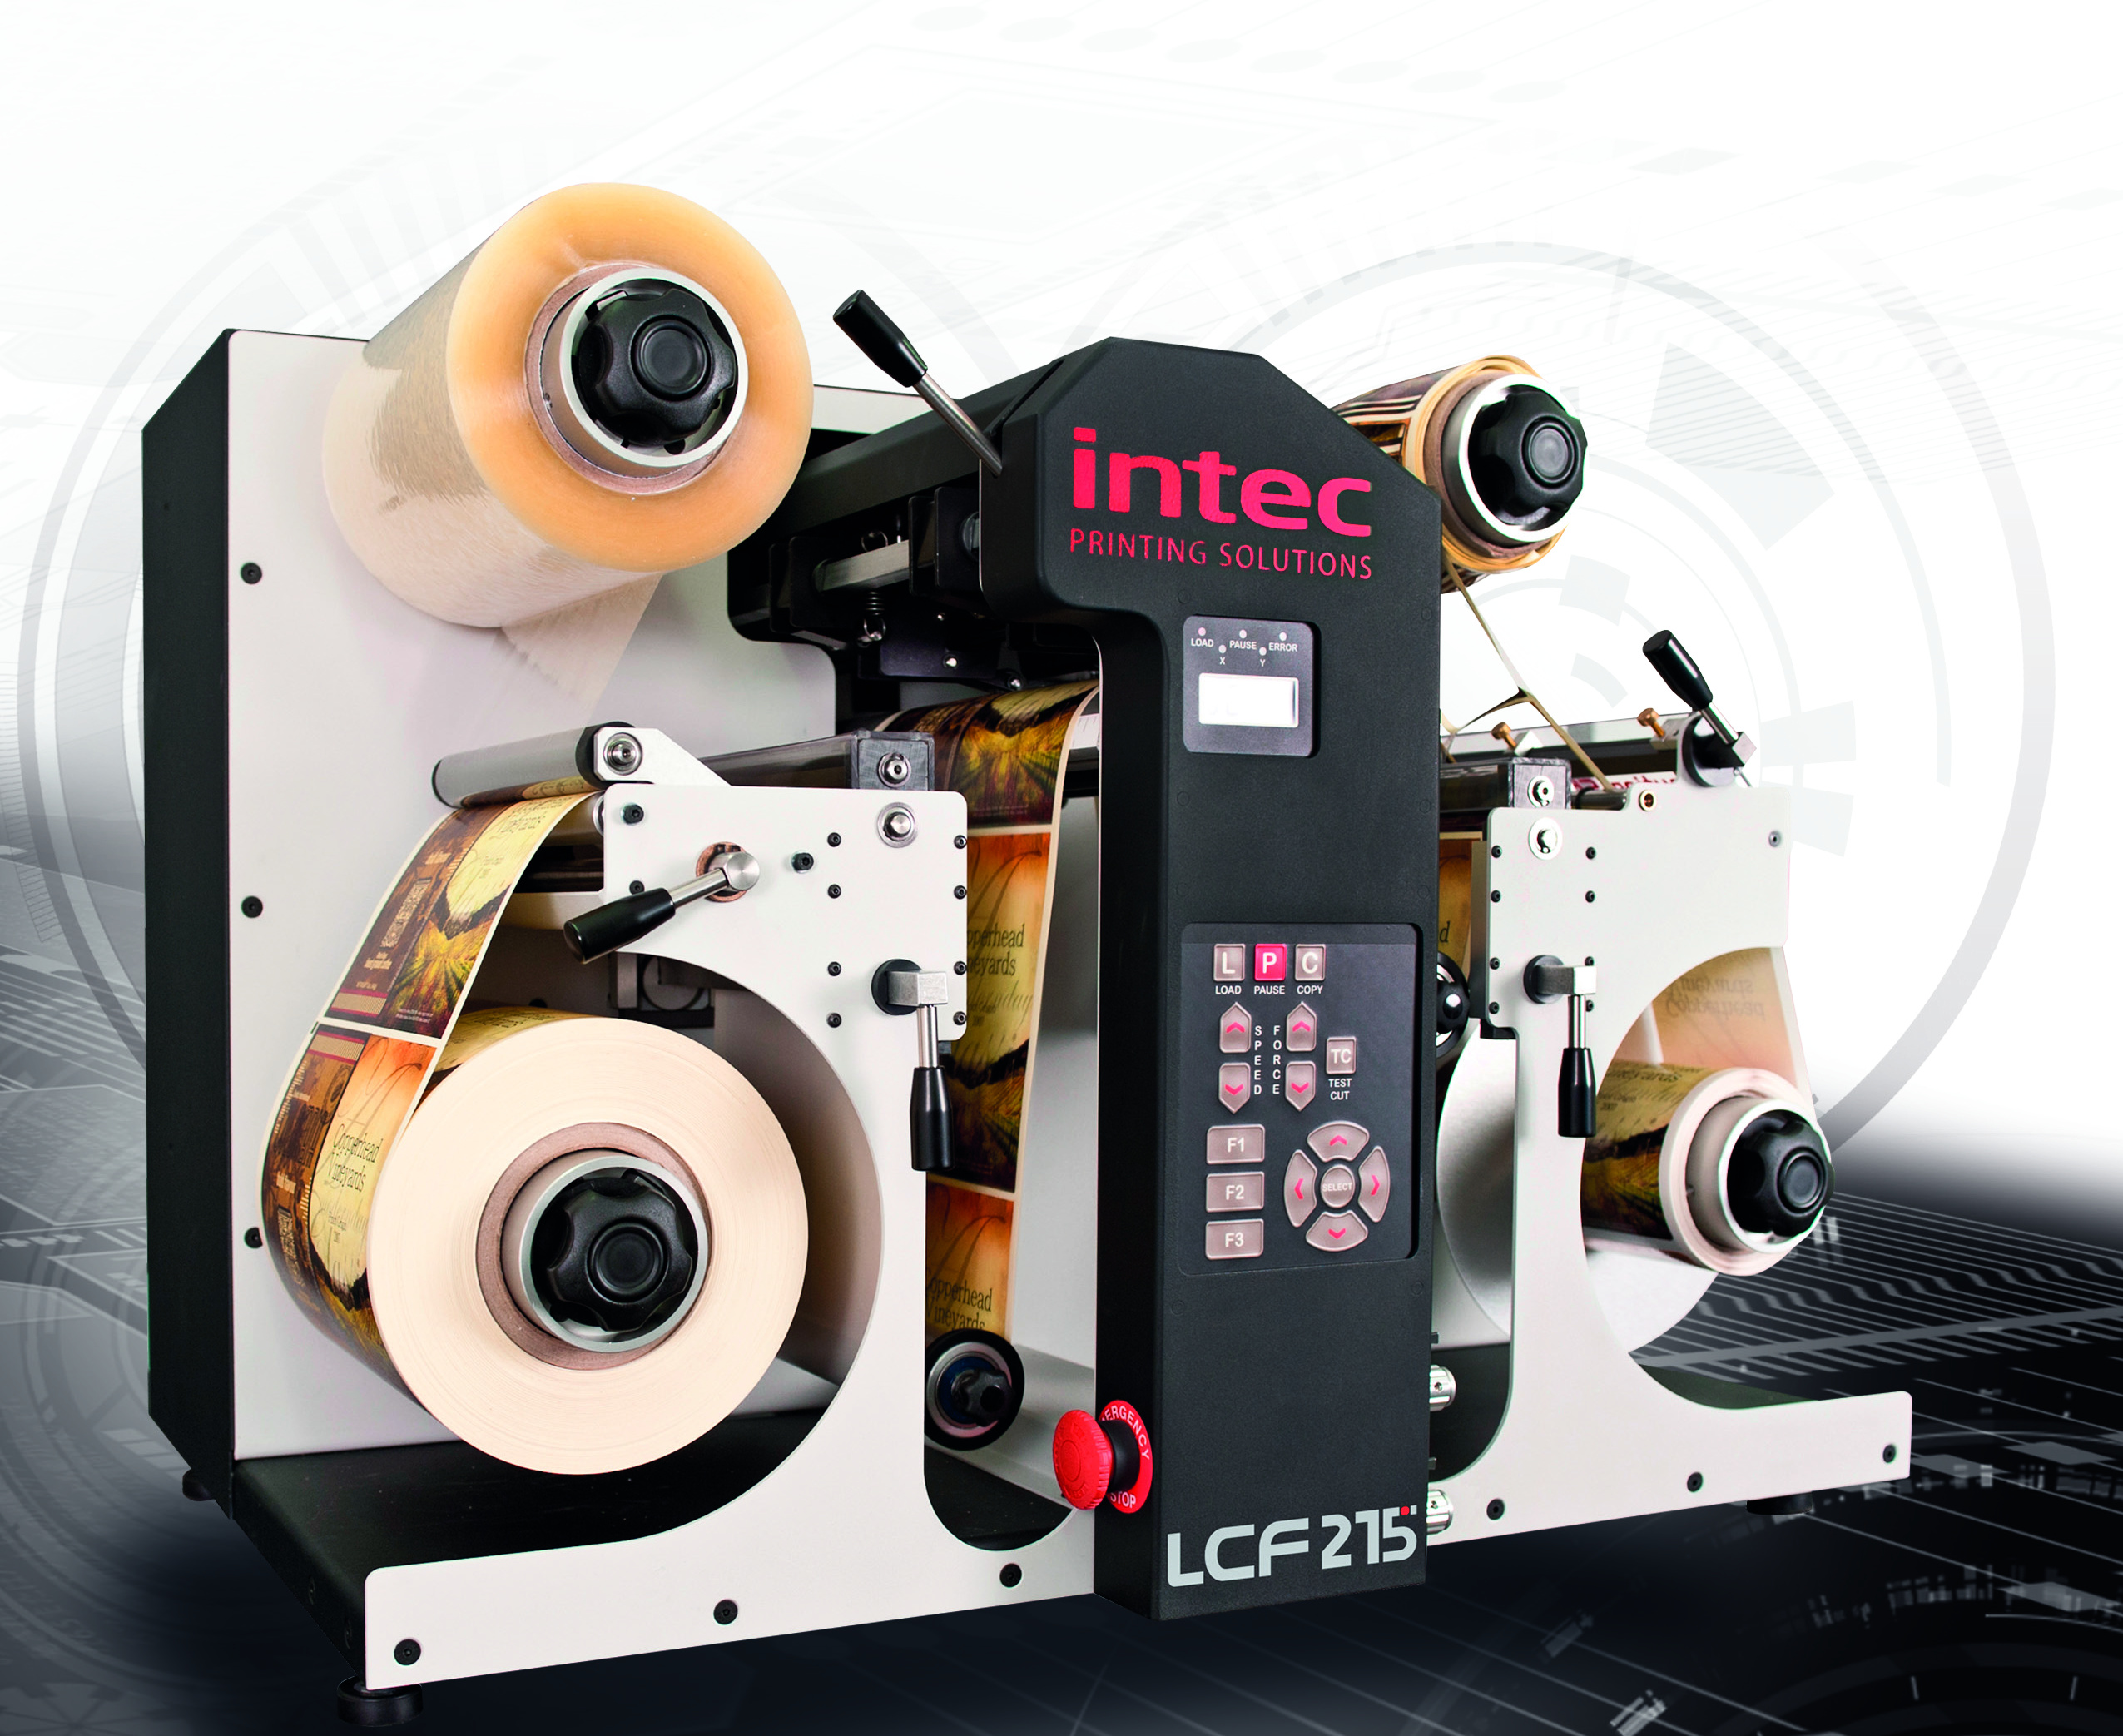 lcf 215 for label production